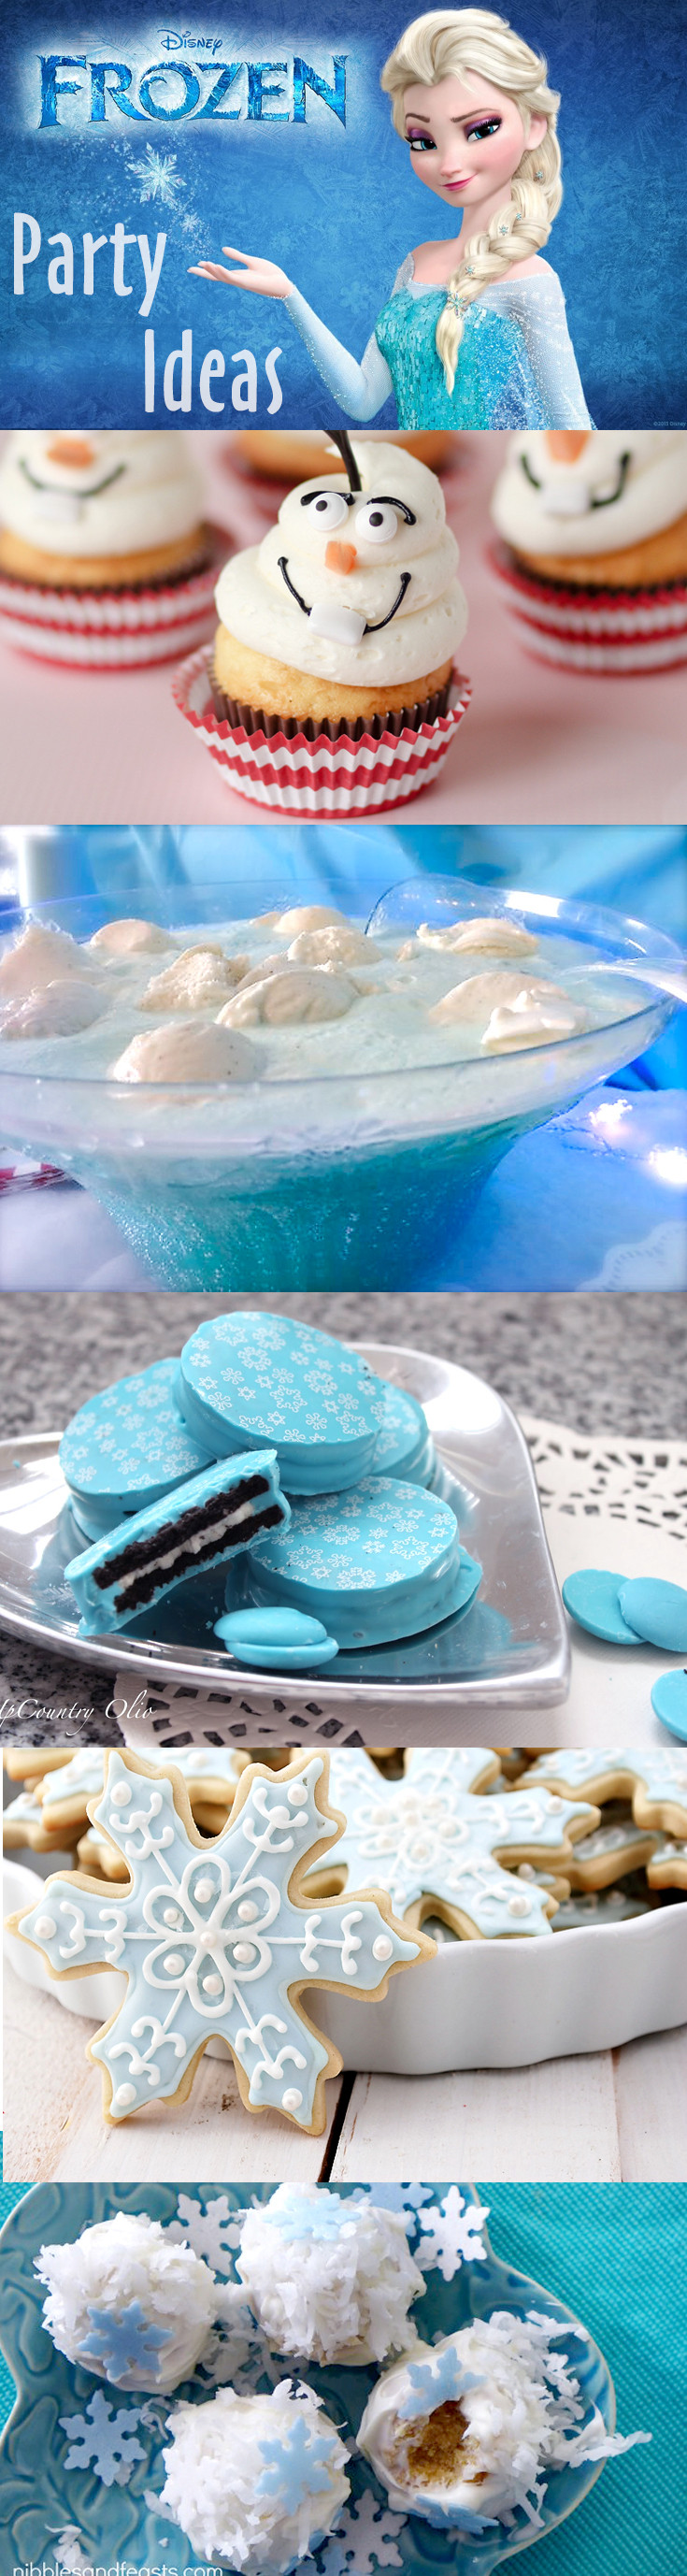 Best ideas about Frozen Themed Birthday Party . Save or Pin Throw a Disney Frozen Themed Party Now.